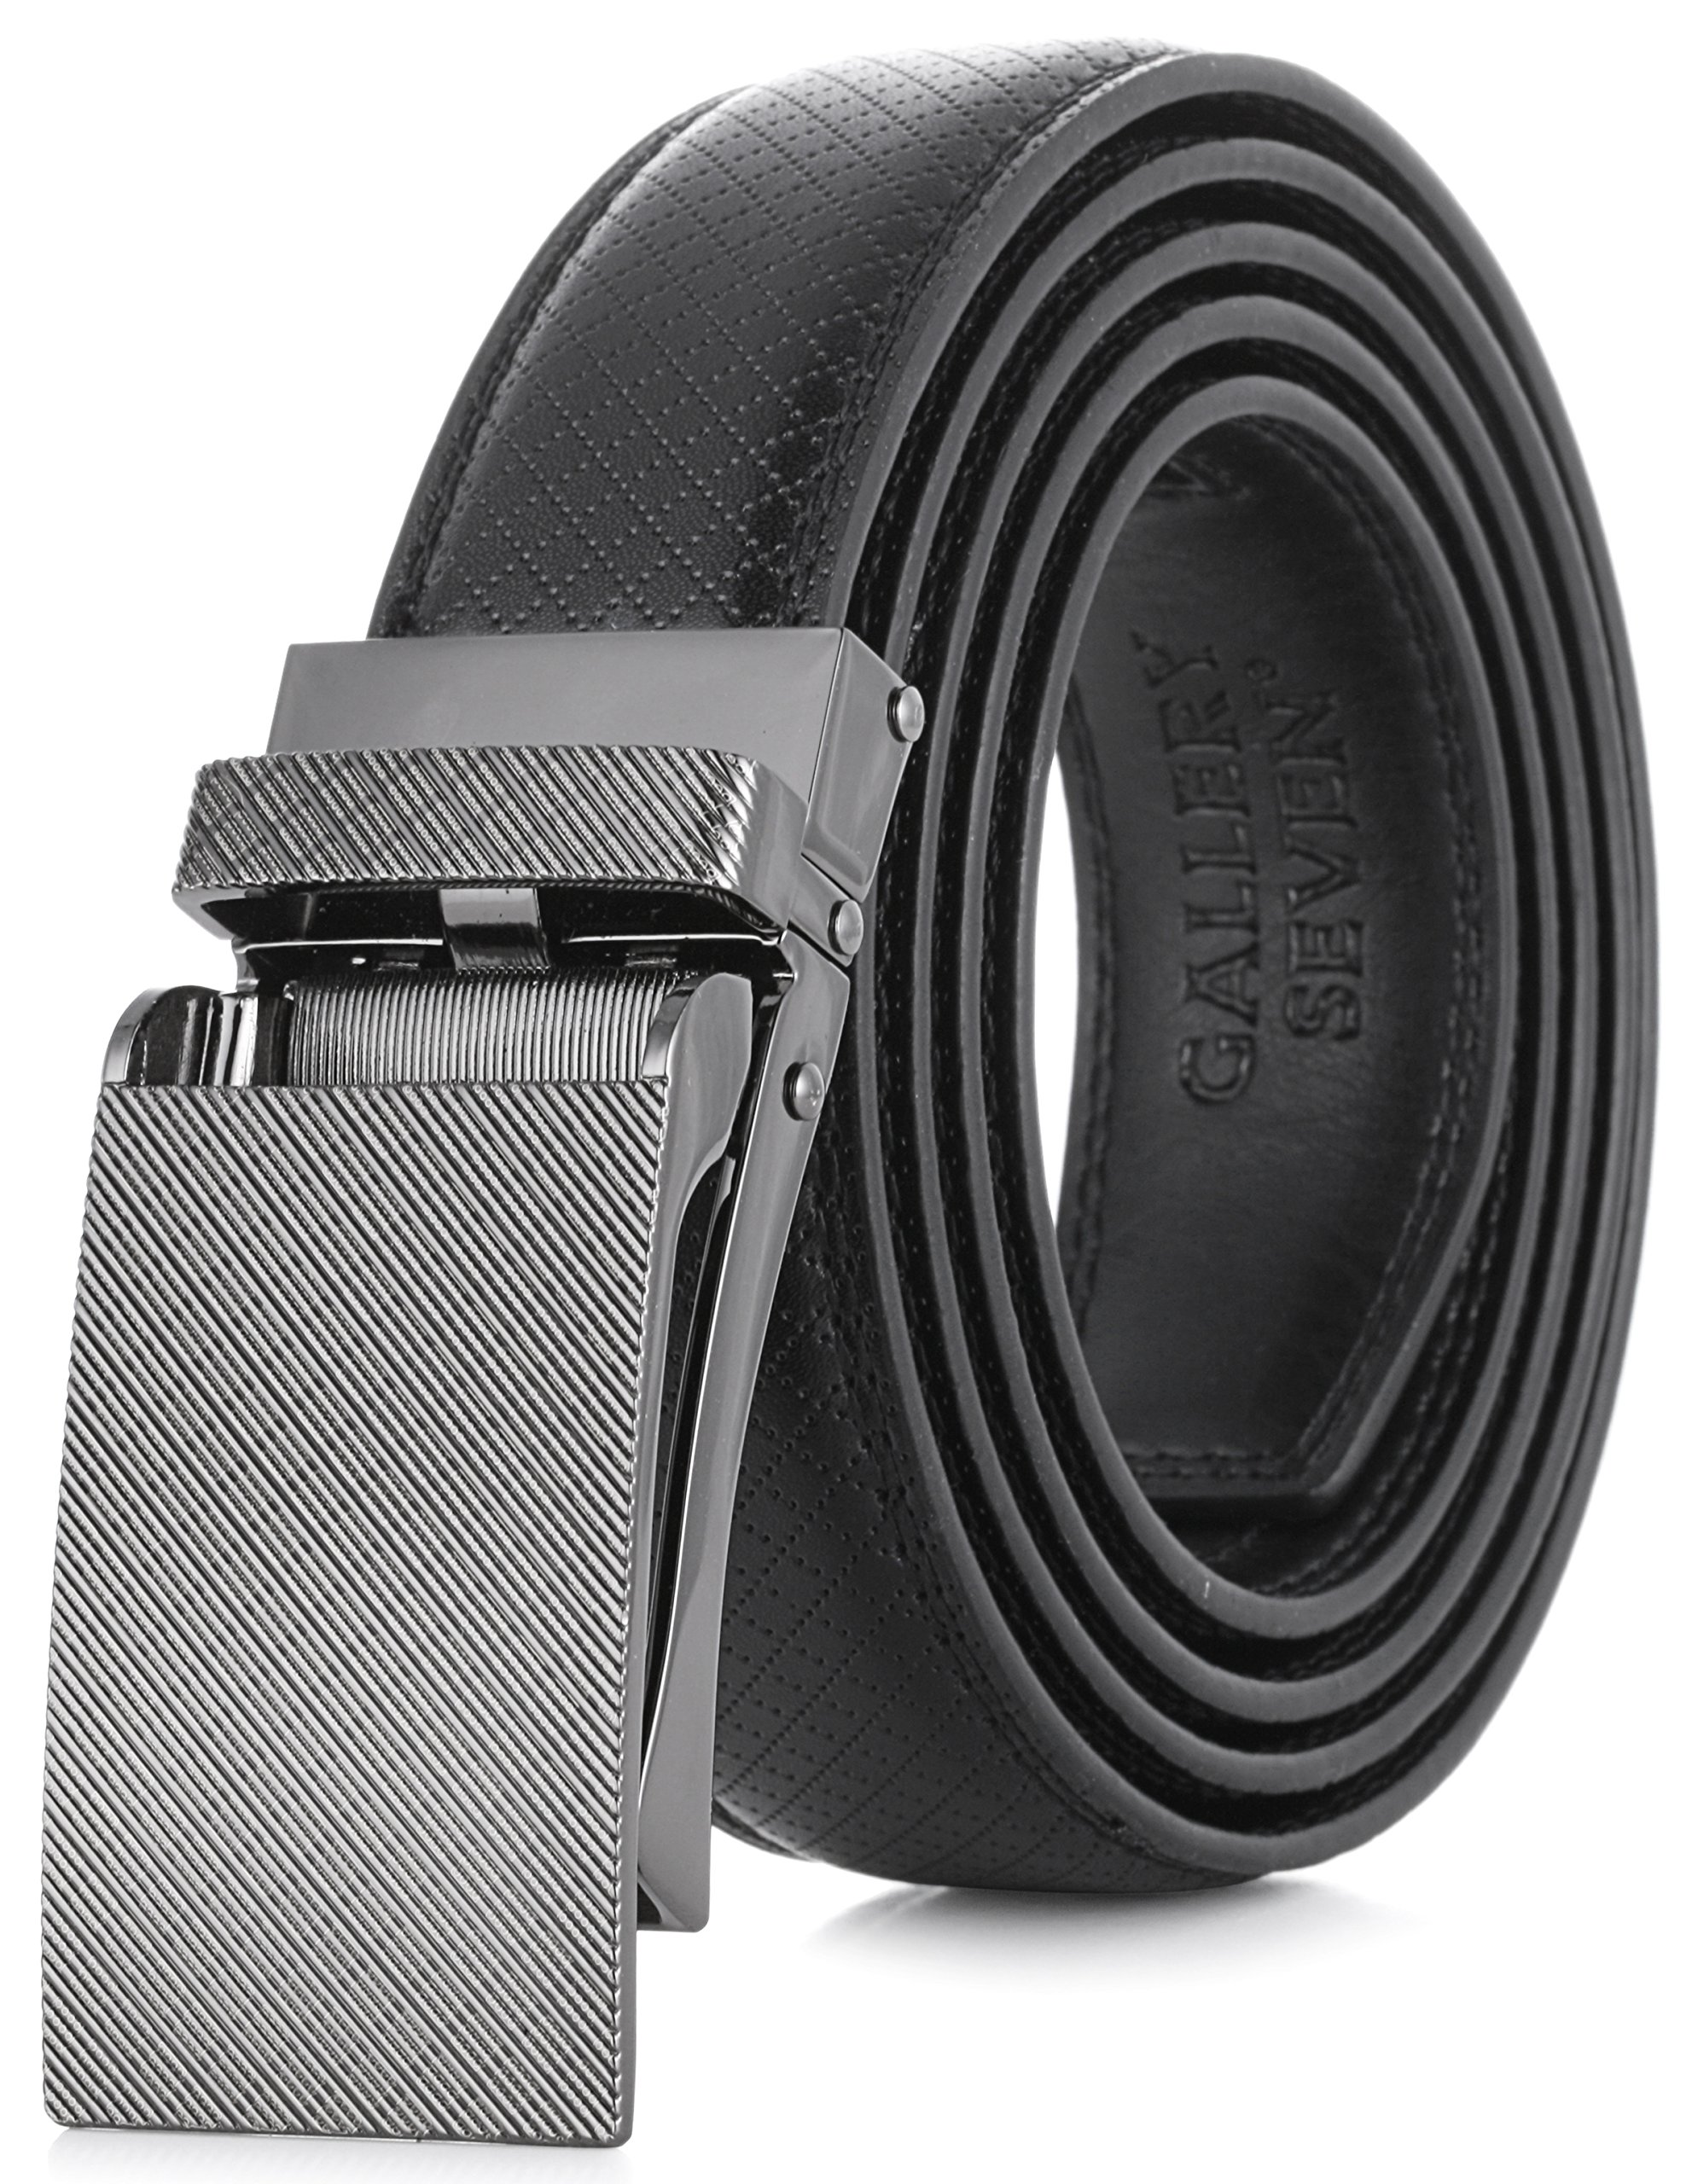 Gallery Seven Leather RatchetBelt For Men - Adjustable Click Belt - Black - Style 11 - Adjustable from 28'' to 44'' Waist by Gallery Seven (Image #1)